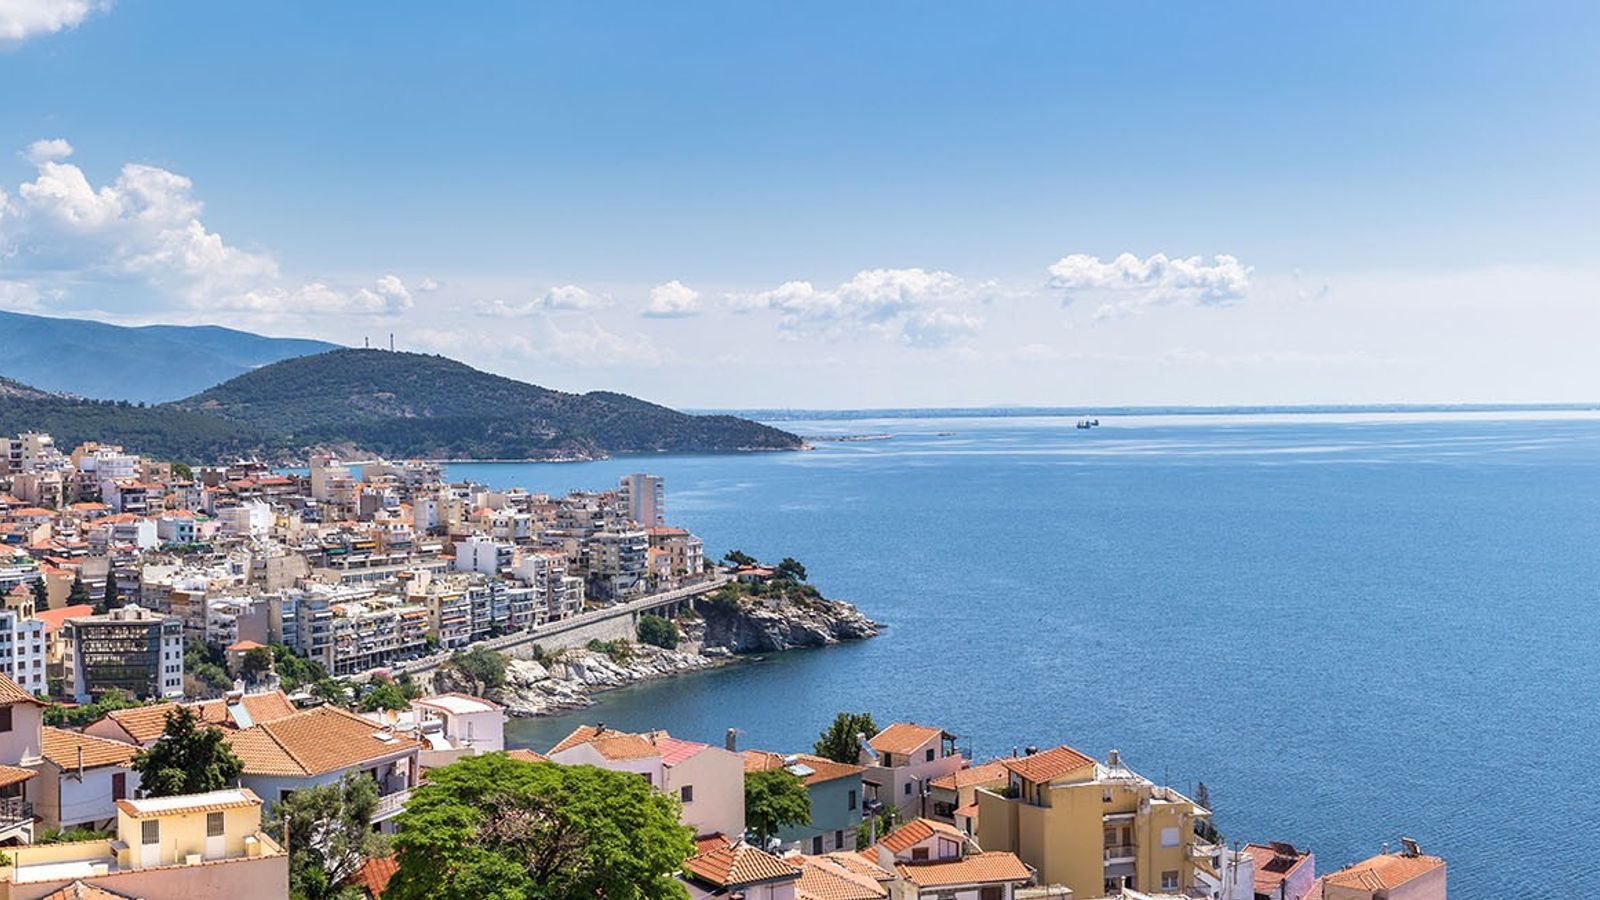 Kavala is a thriving city with Blue Flag beaches lined with waterside tavernas serving fresh seafood.